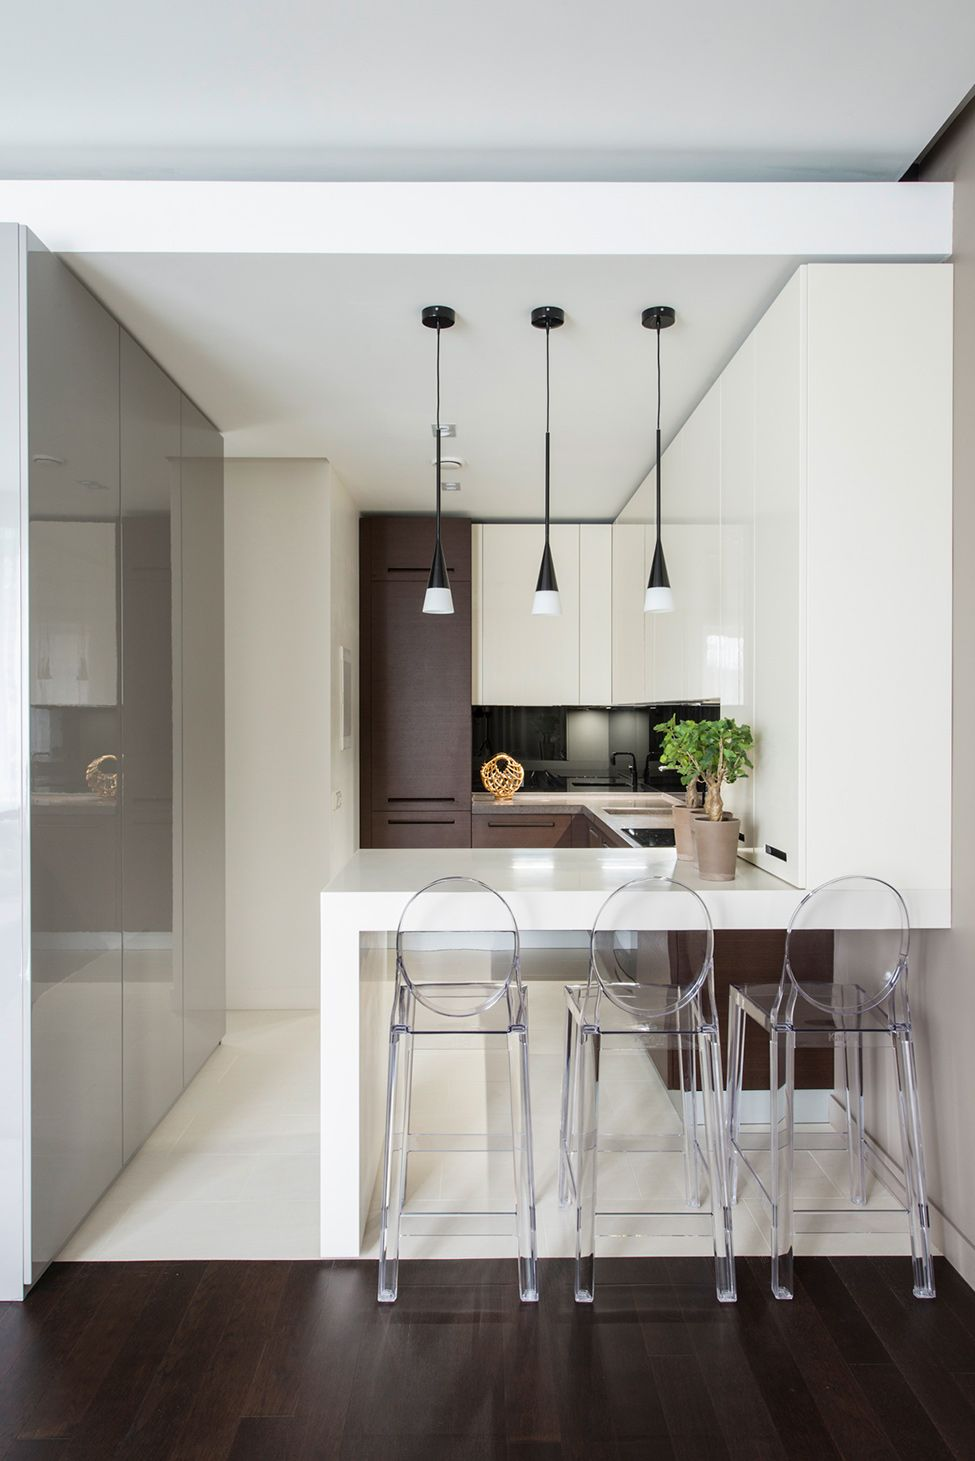 Hanging Modern Kitchen Pendant Lights Small Design Bar